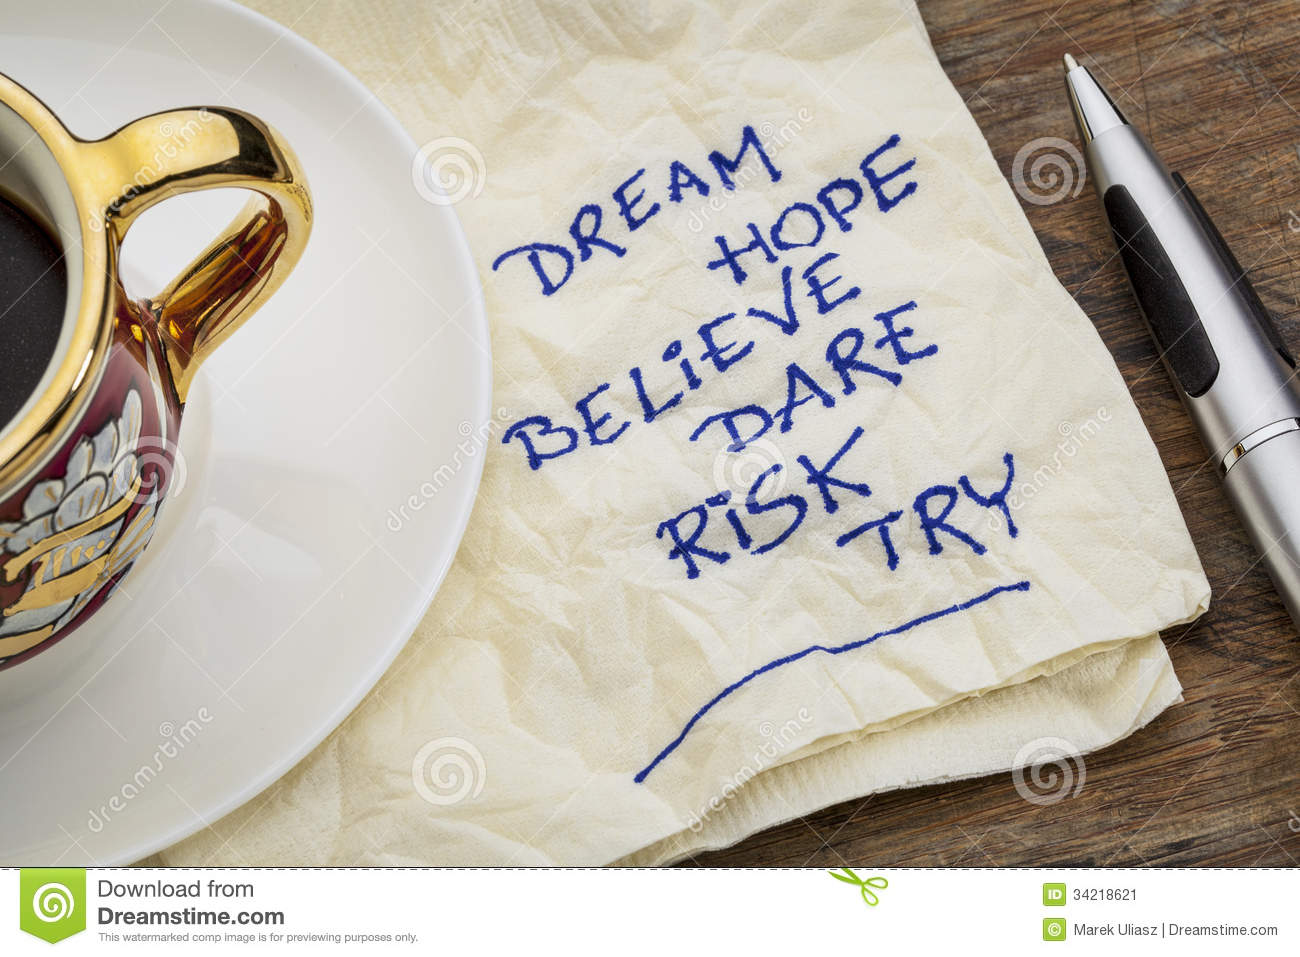 dream  hope  believe stock image  image of white  dream